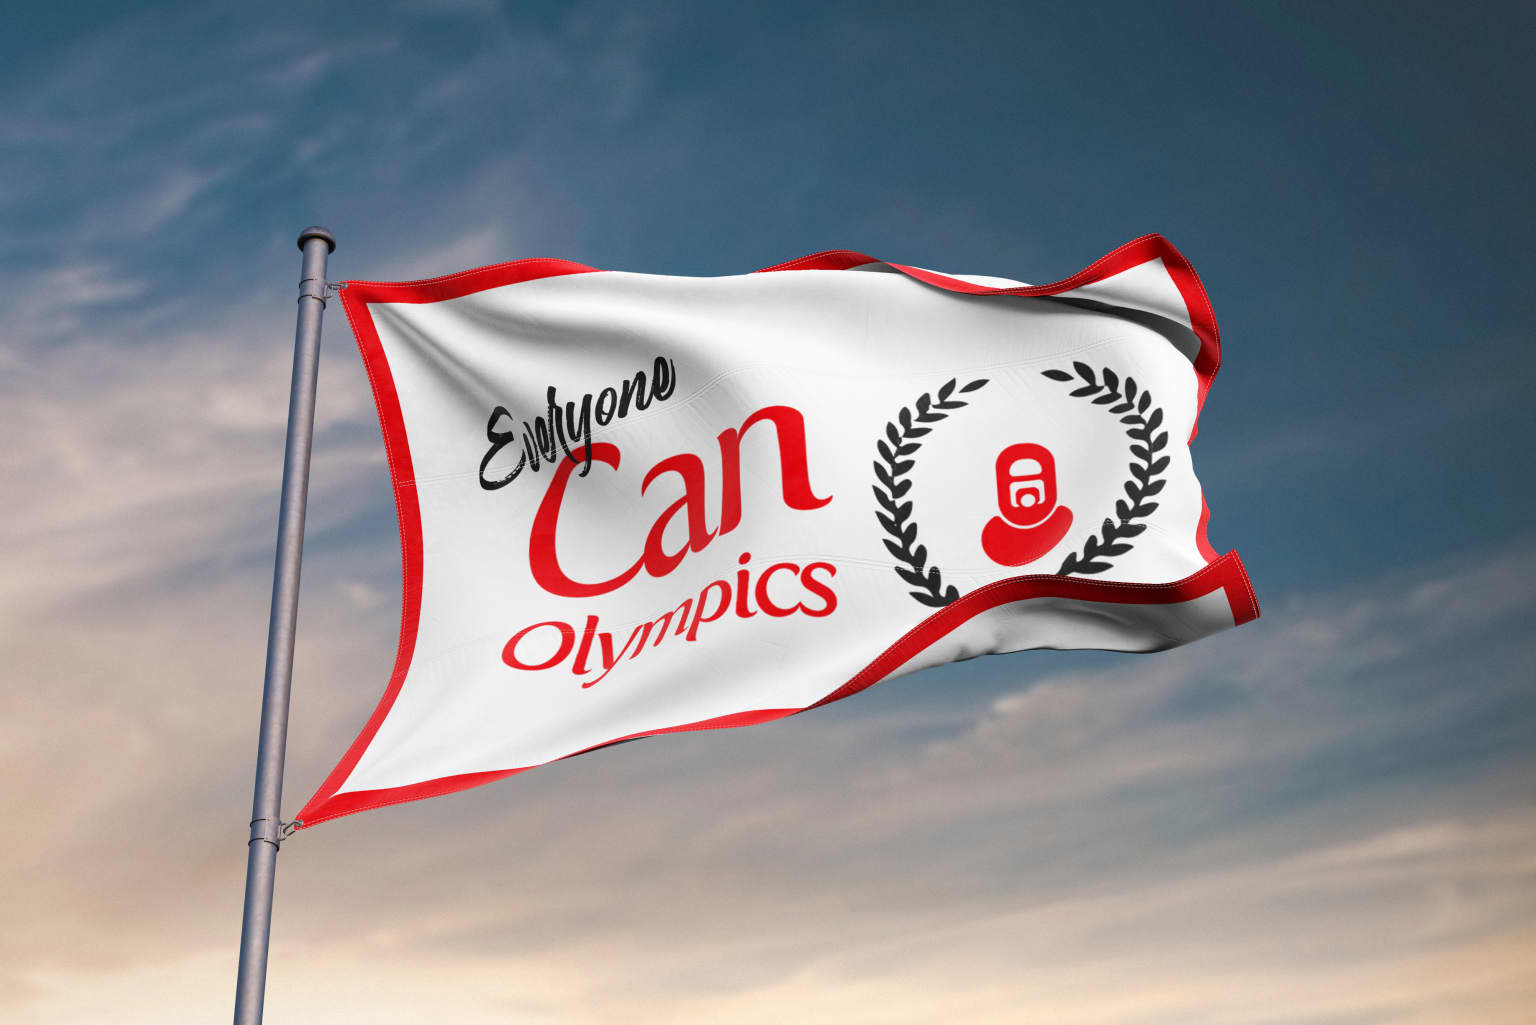 Everyone Can Olympics